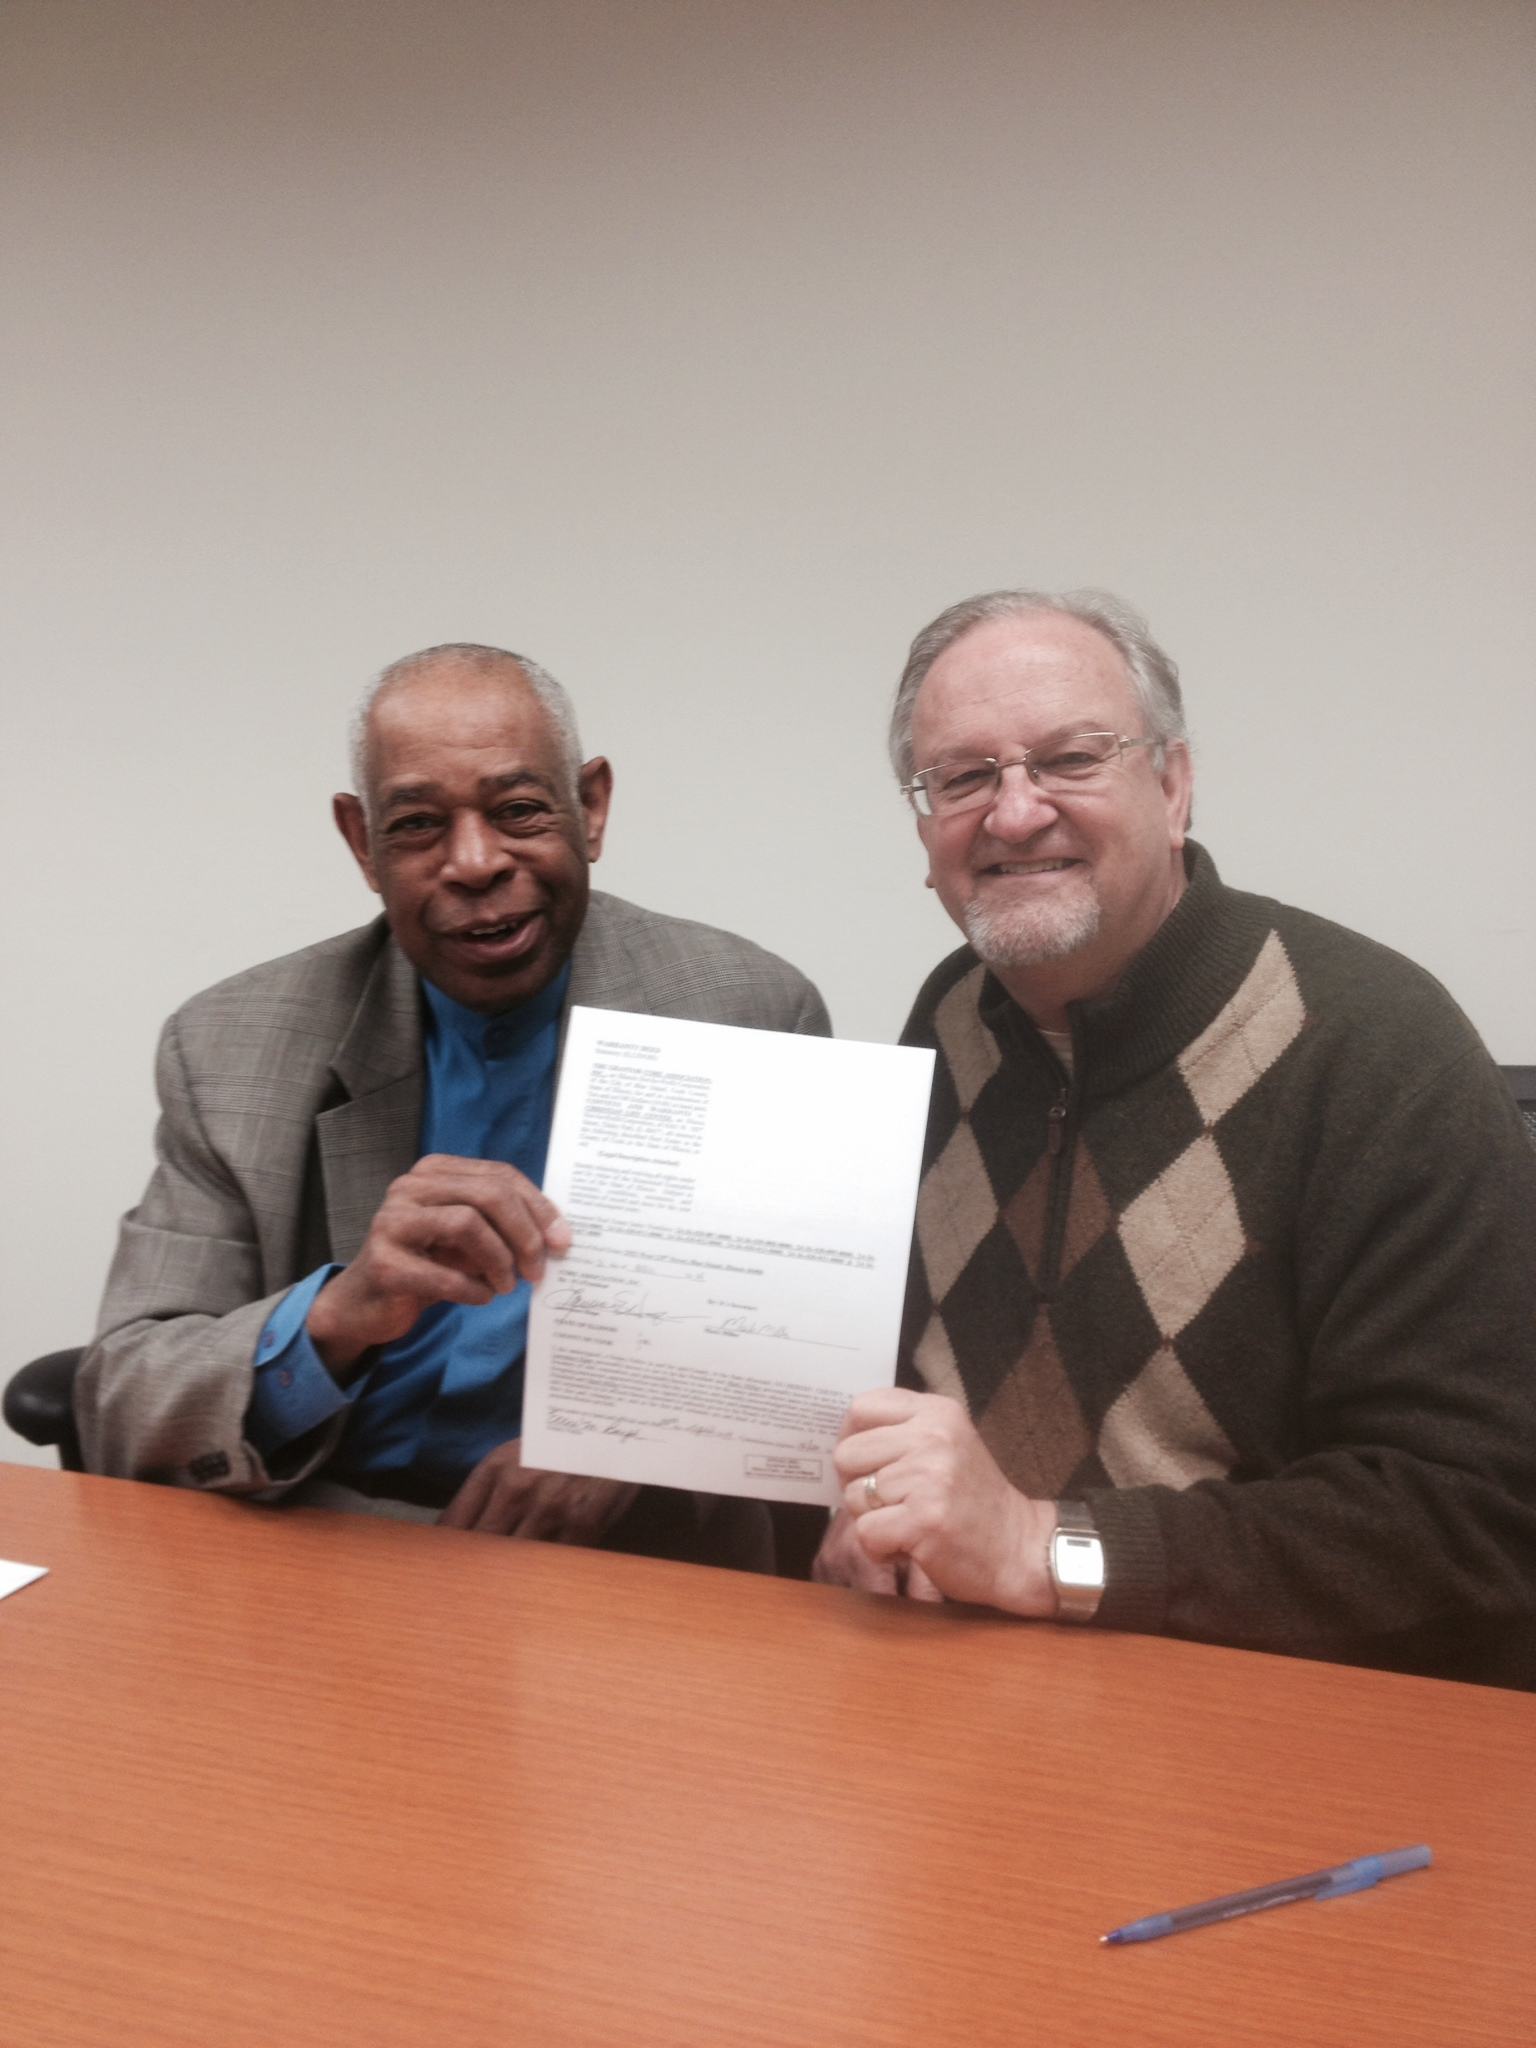 CLC Corporate Secretary, Jack Starks & me holding the DEED to the Blue Island property!